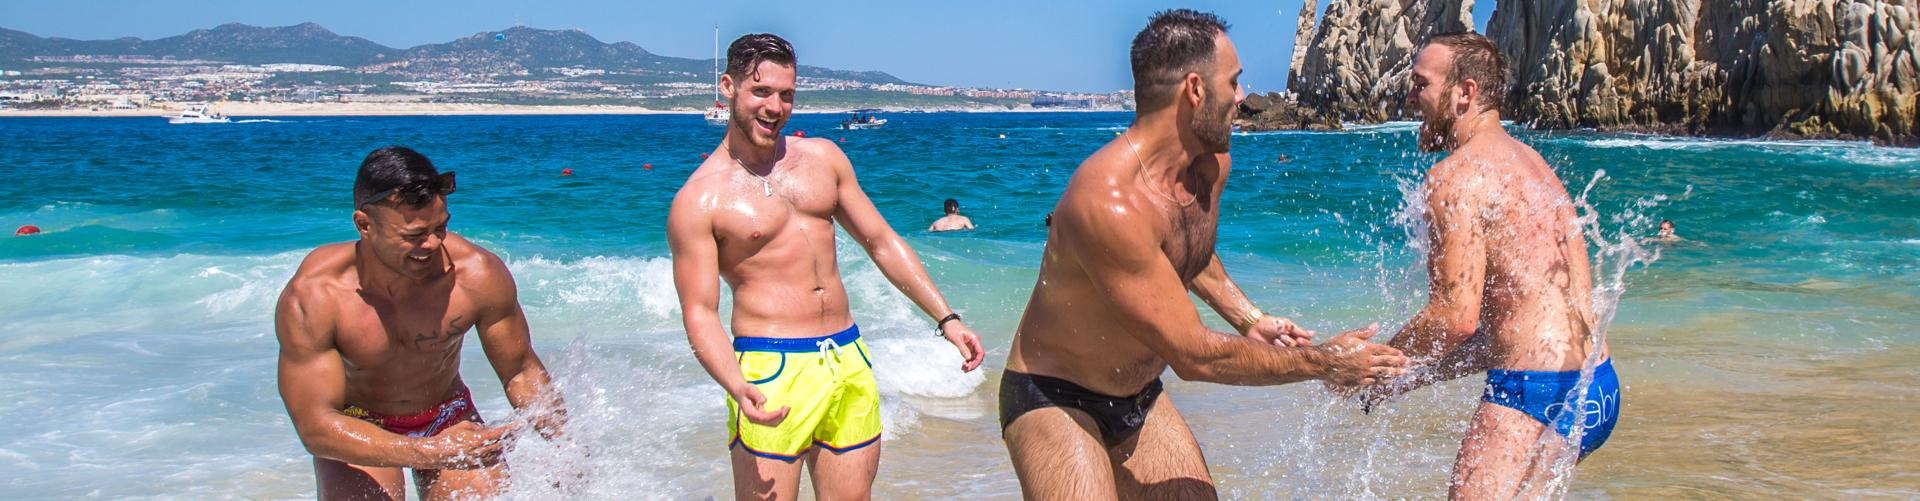 Gay Hotels direkt am Strand